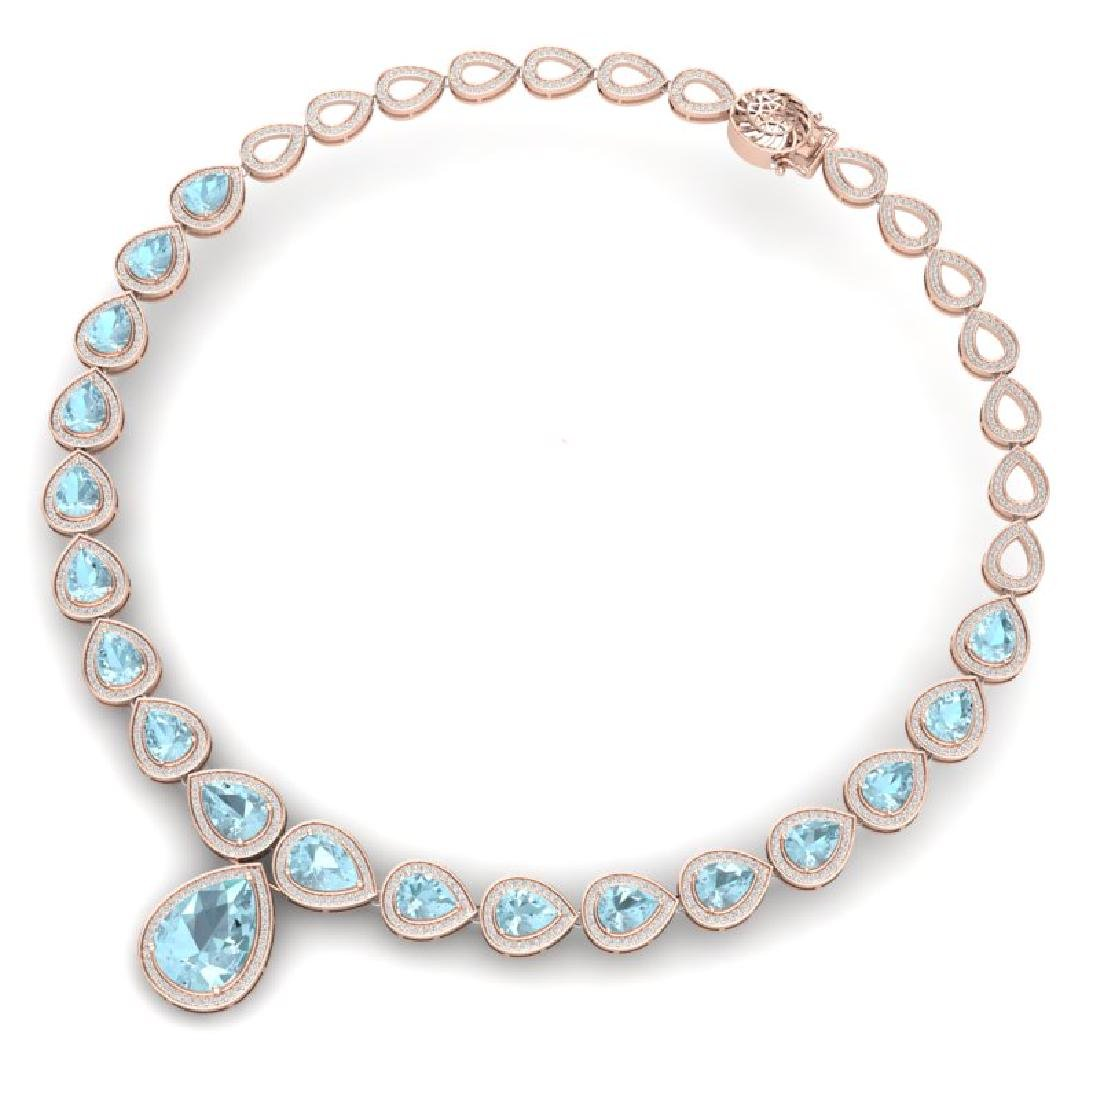 54 CTW Royalty Sky Topaz & VS Diamond Necklace 18K Rose - 3